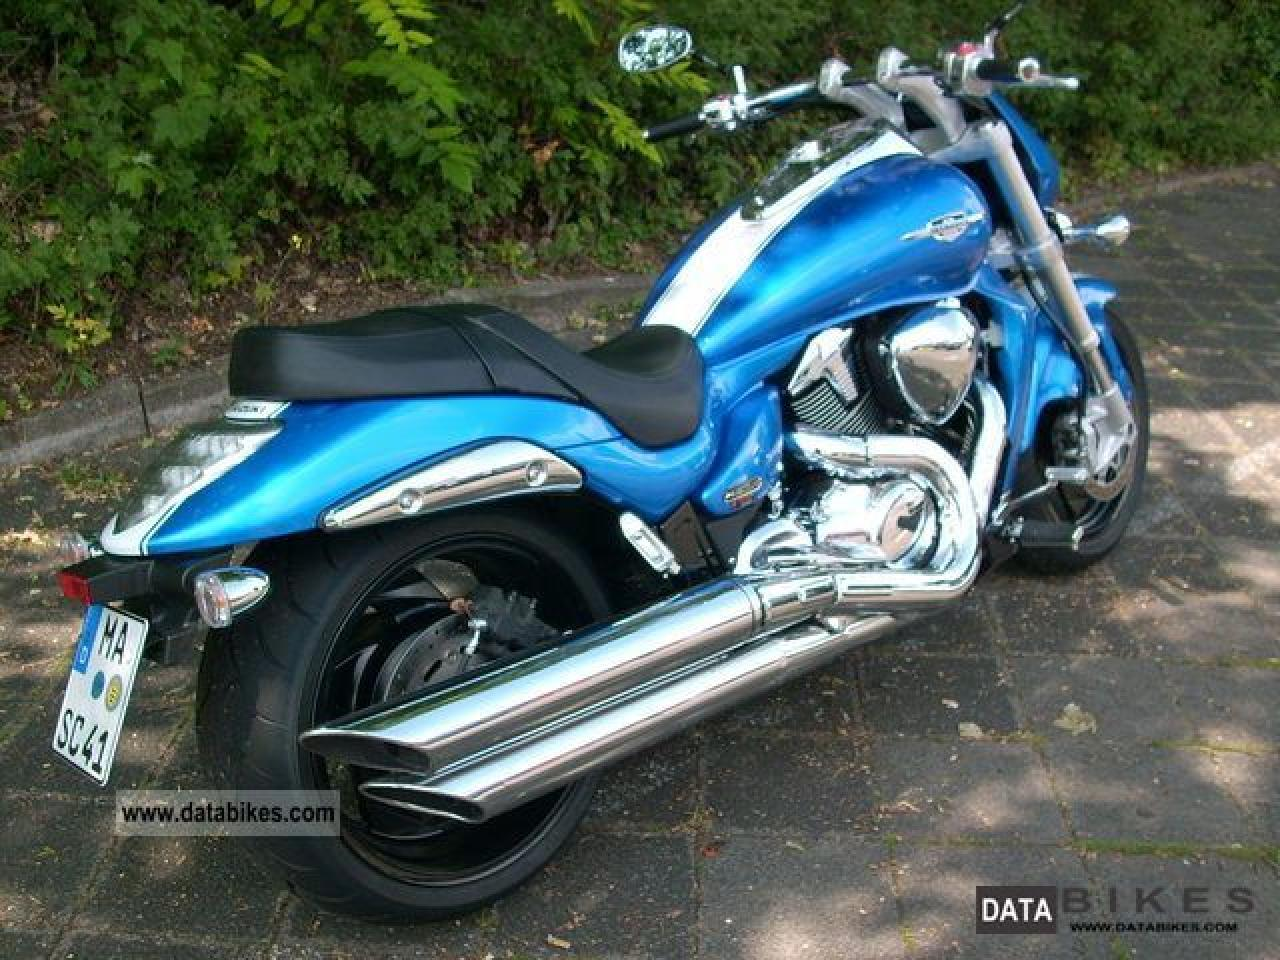 suzuki suzuki intruder m1800rz moto zombdrive com. Black Bedroom Furniture Sets. Home Design Ideas